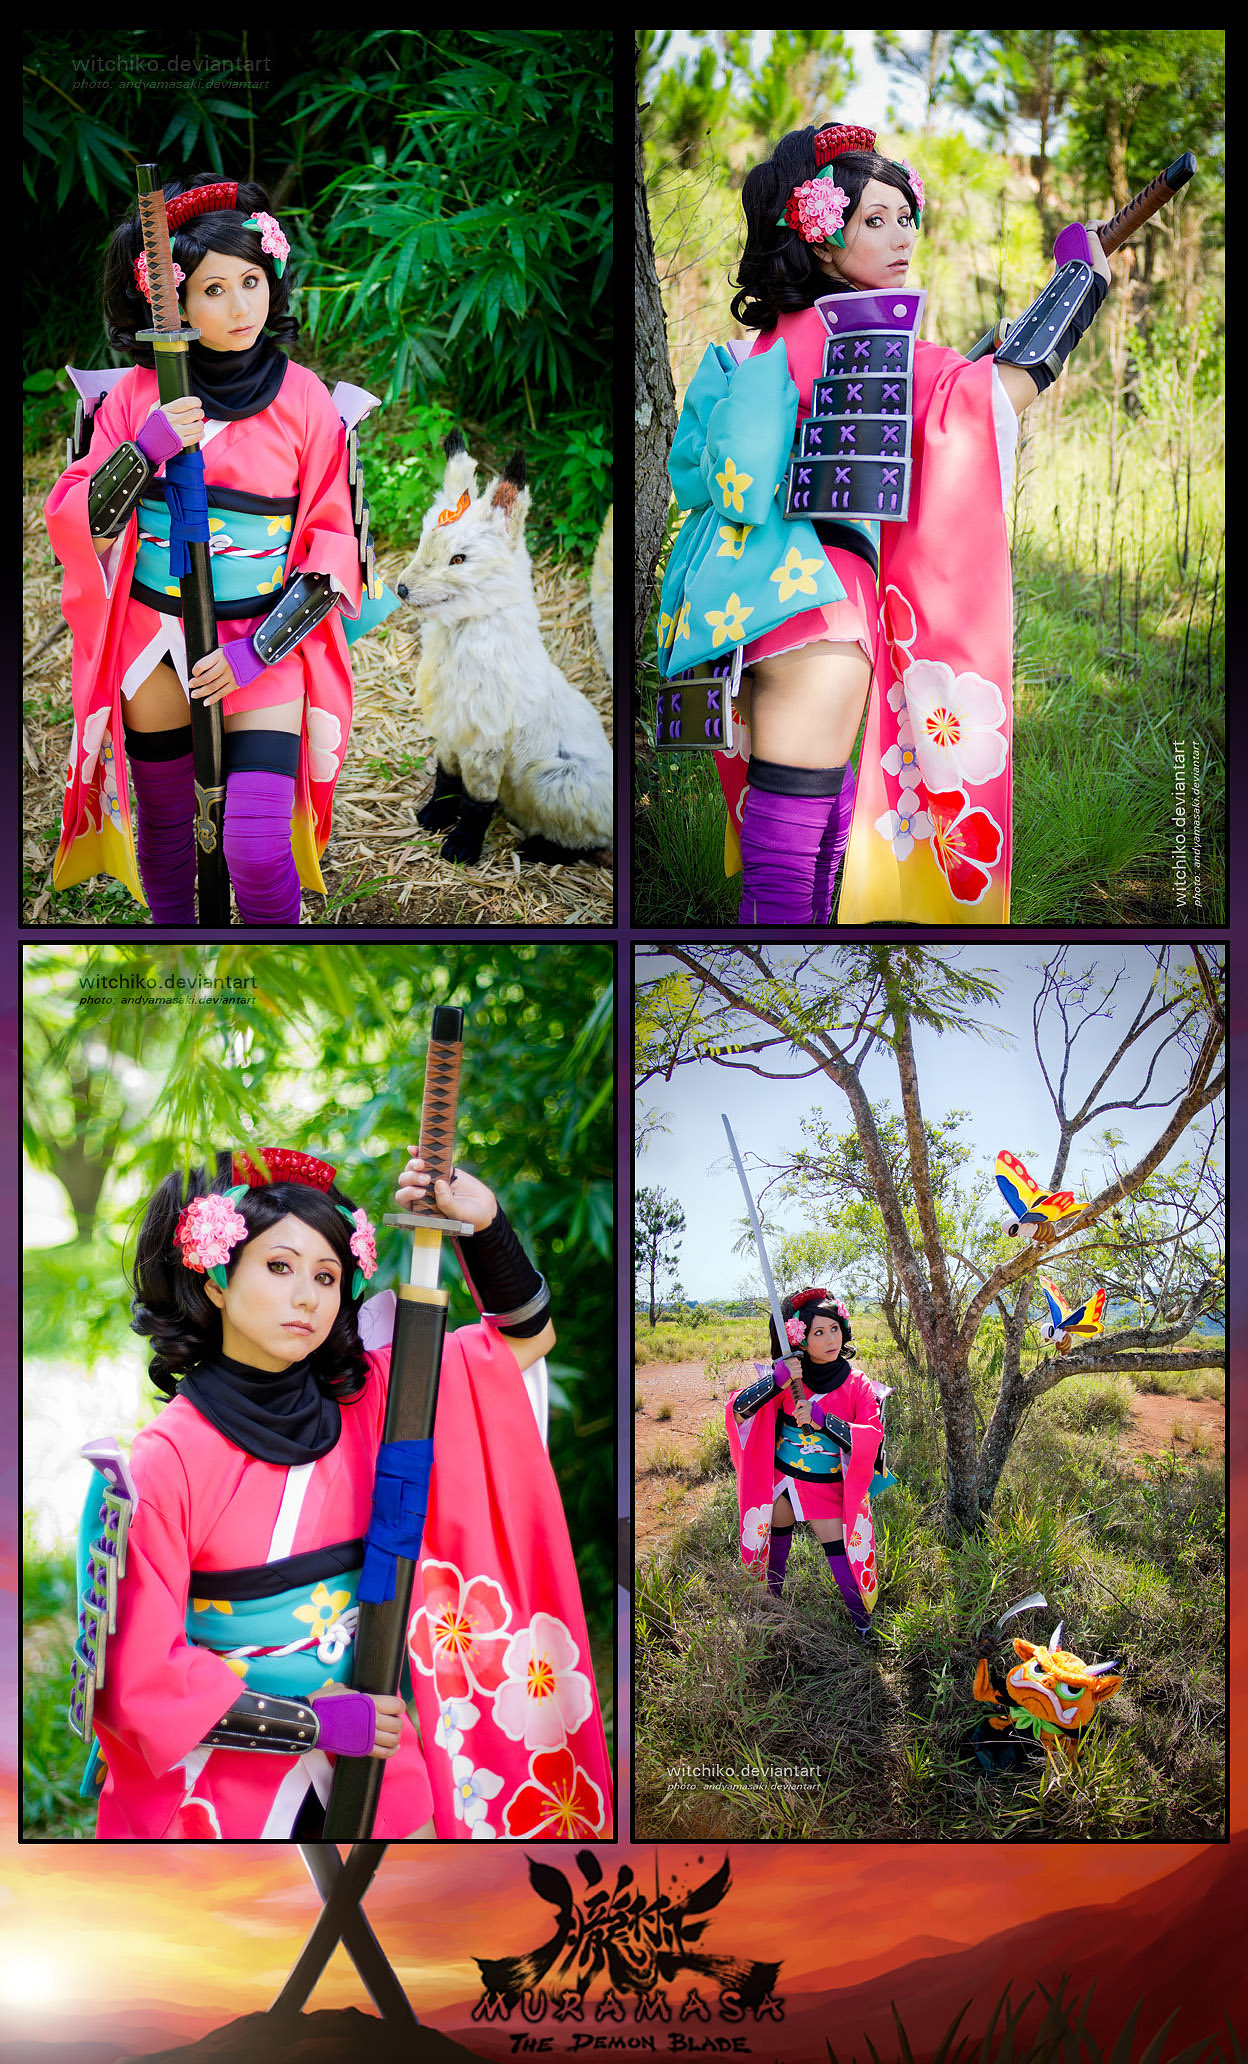 Muramasa:::The Demon Blade by Witchiko